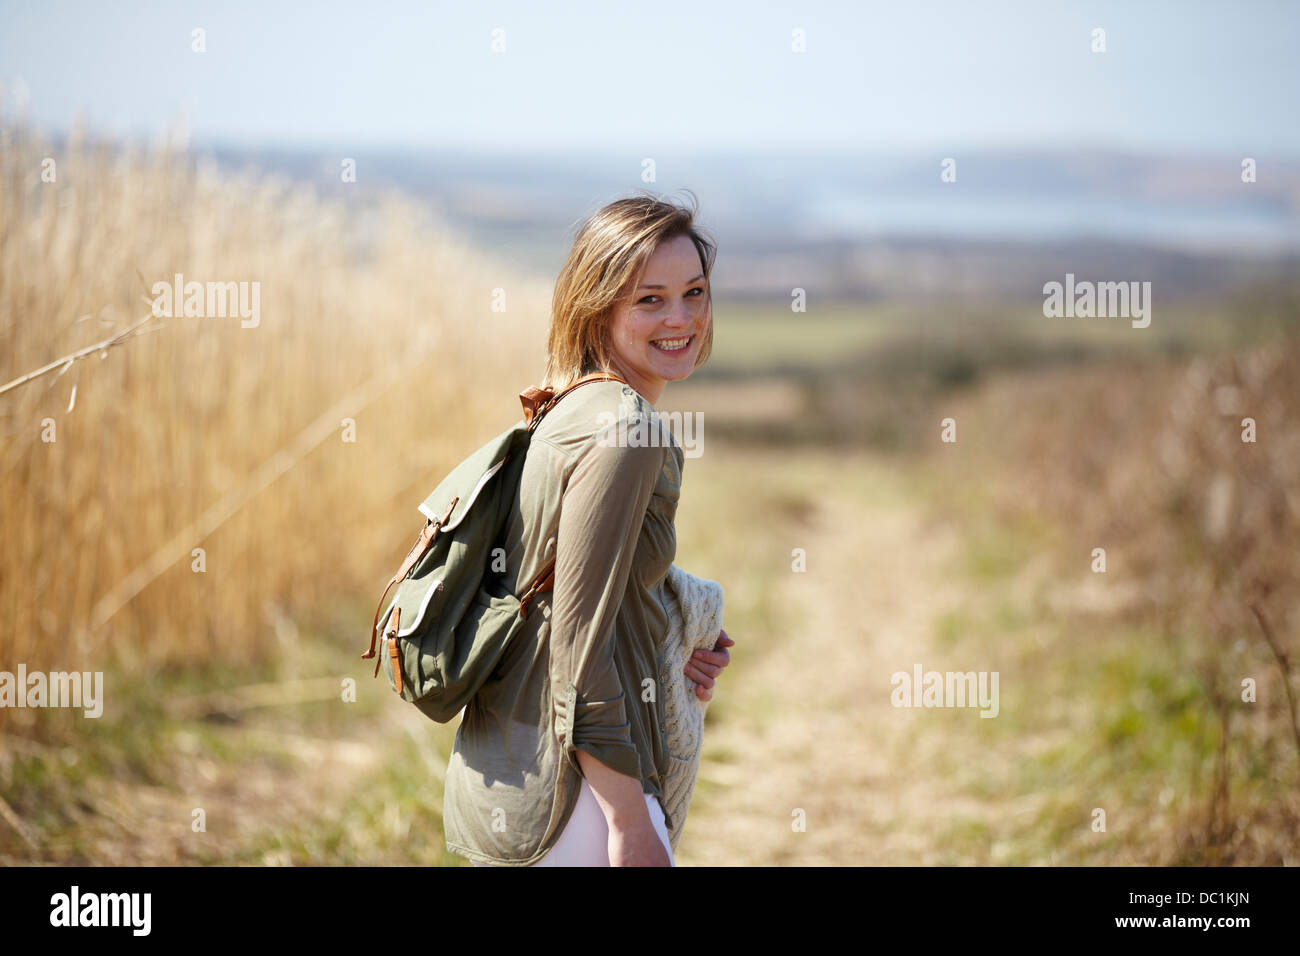 Portrait of young woman on dirt track next to field of reeds - Stock Image